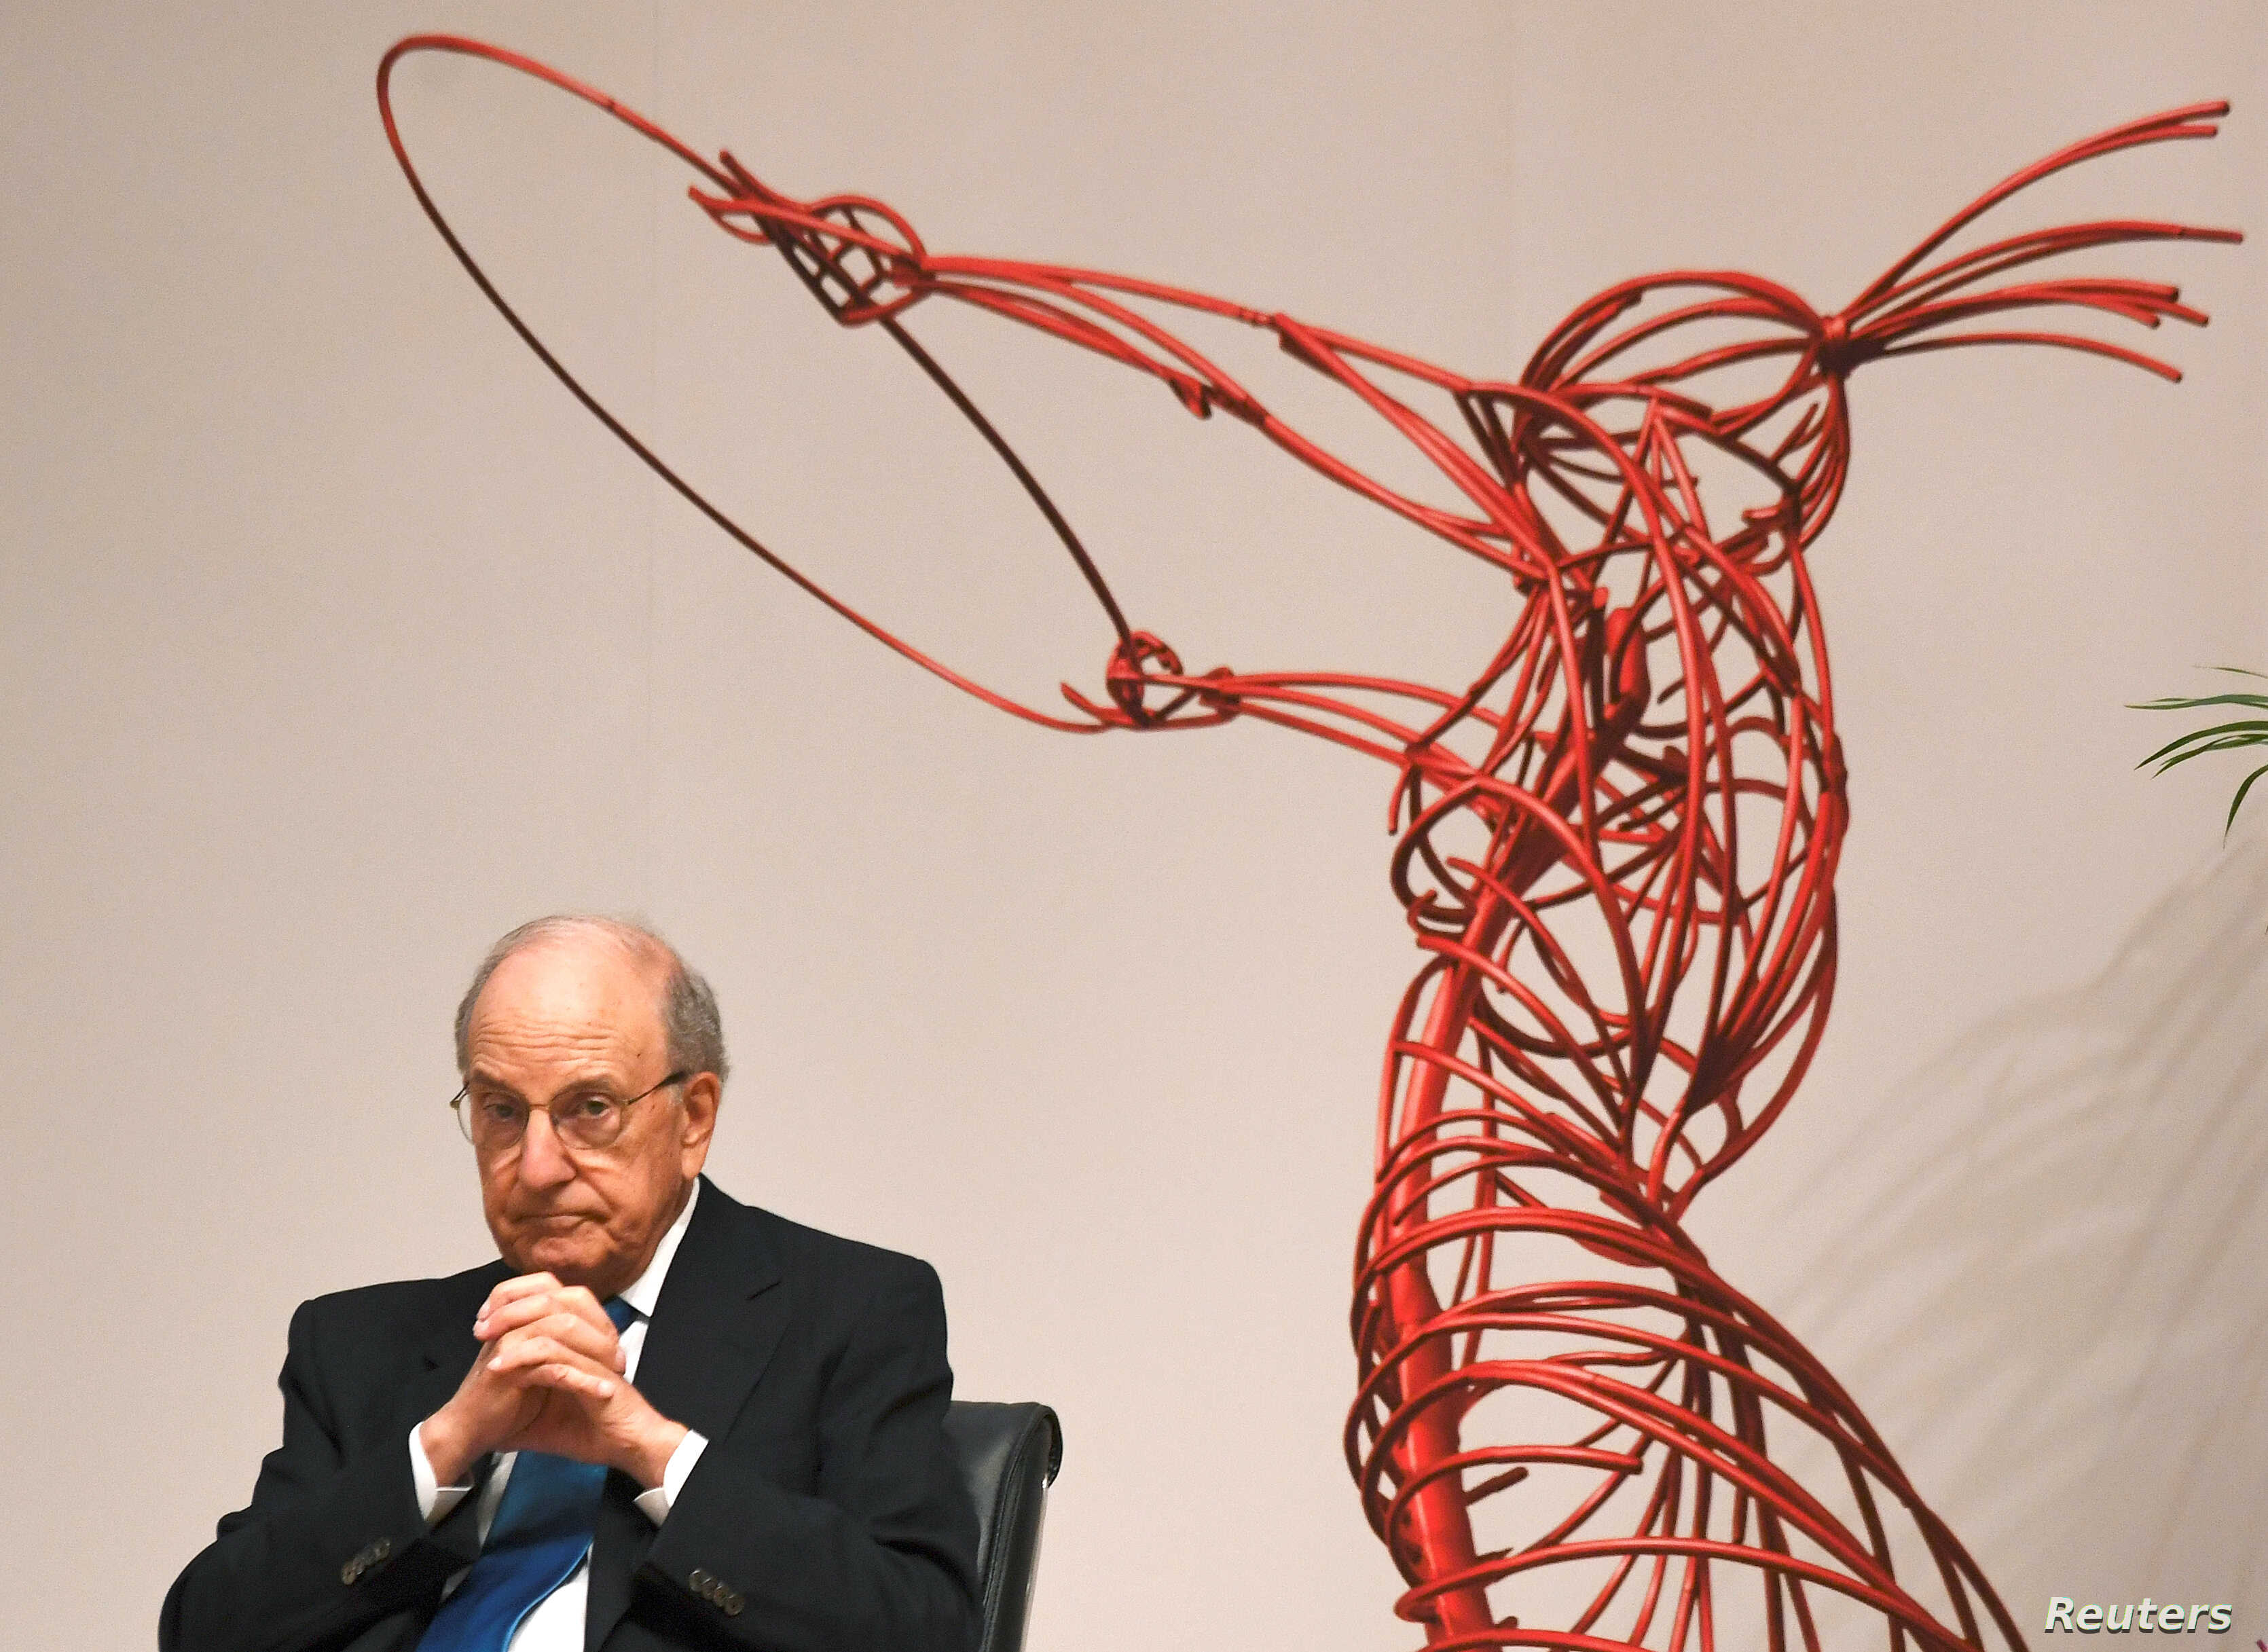 Former U.S. Senator George Mitchell attends an event to celebrate the 20th anniversary of the Good Friday Agreement, in Belfast, Northern Ireland, April 10, 2018.